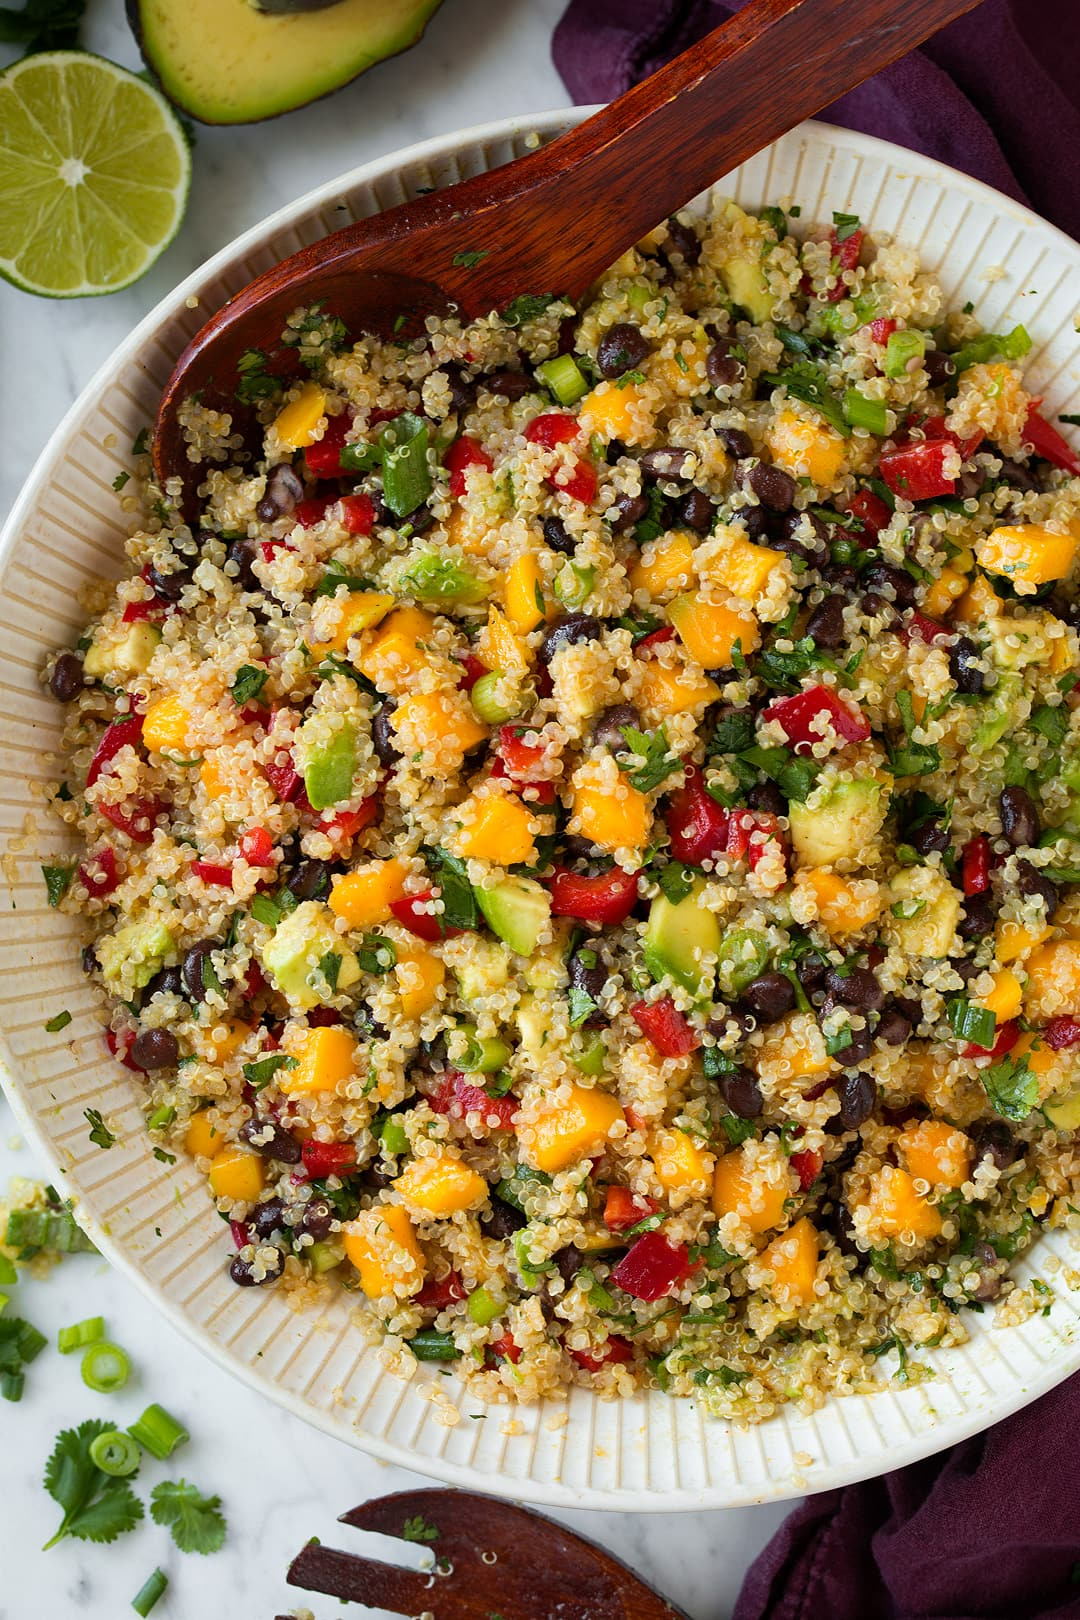 Overhead image of Quinoa Salad in a large white ceramic bowl, with wooden spoon for serving.